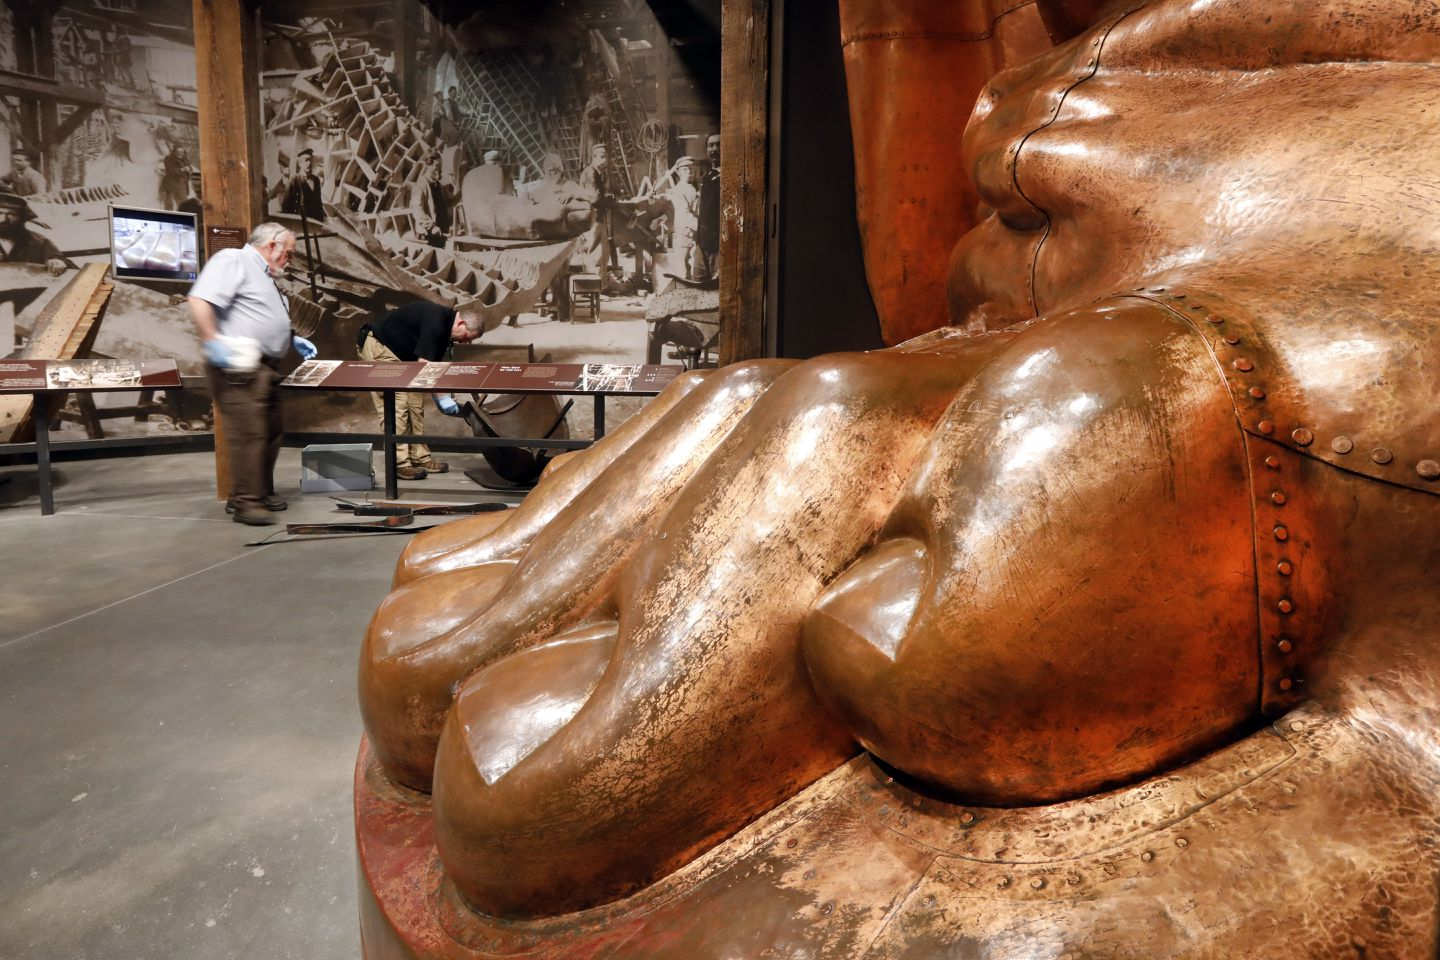 A full-scale model of the Statue of Liberty's foot is among the artifacts.